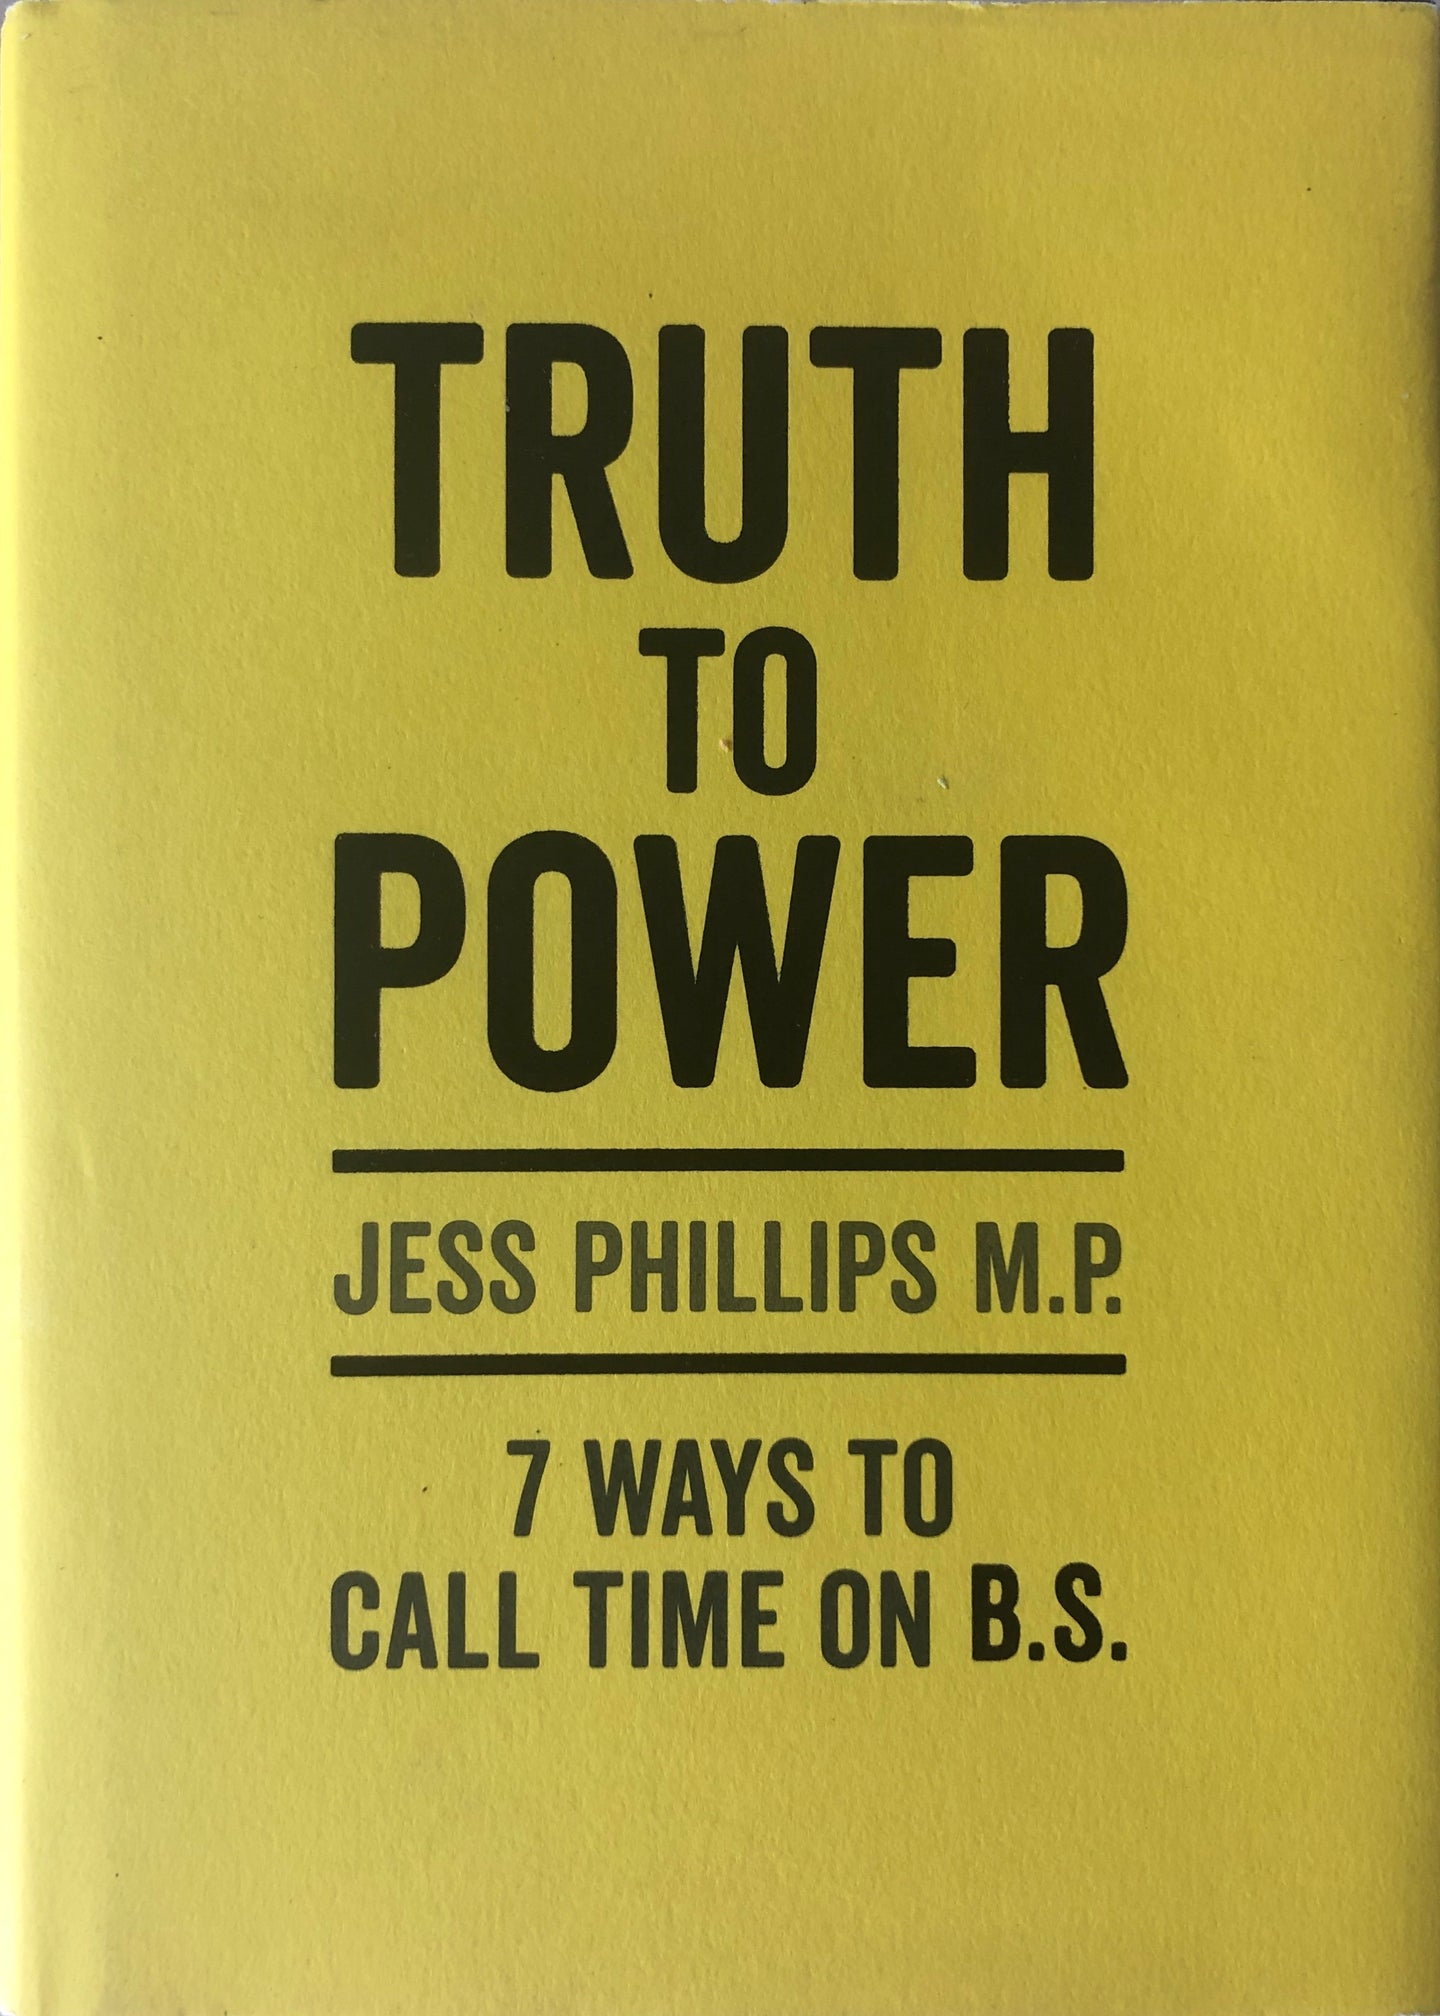 Truth to Power: 7 Ways to Call Time on B.S.